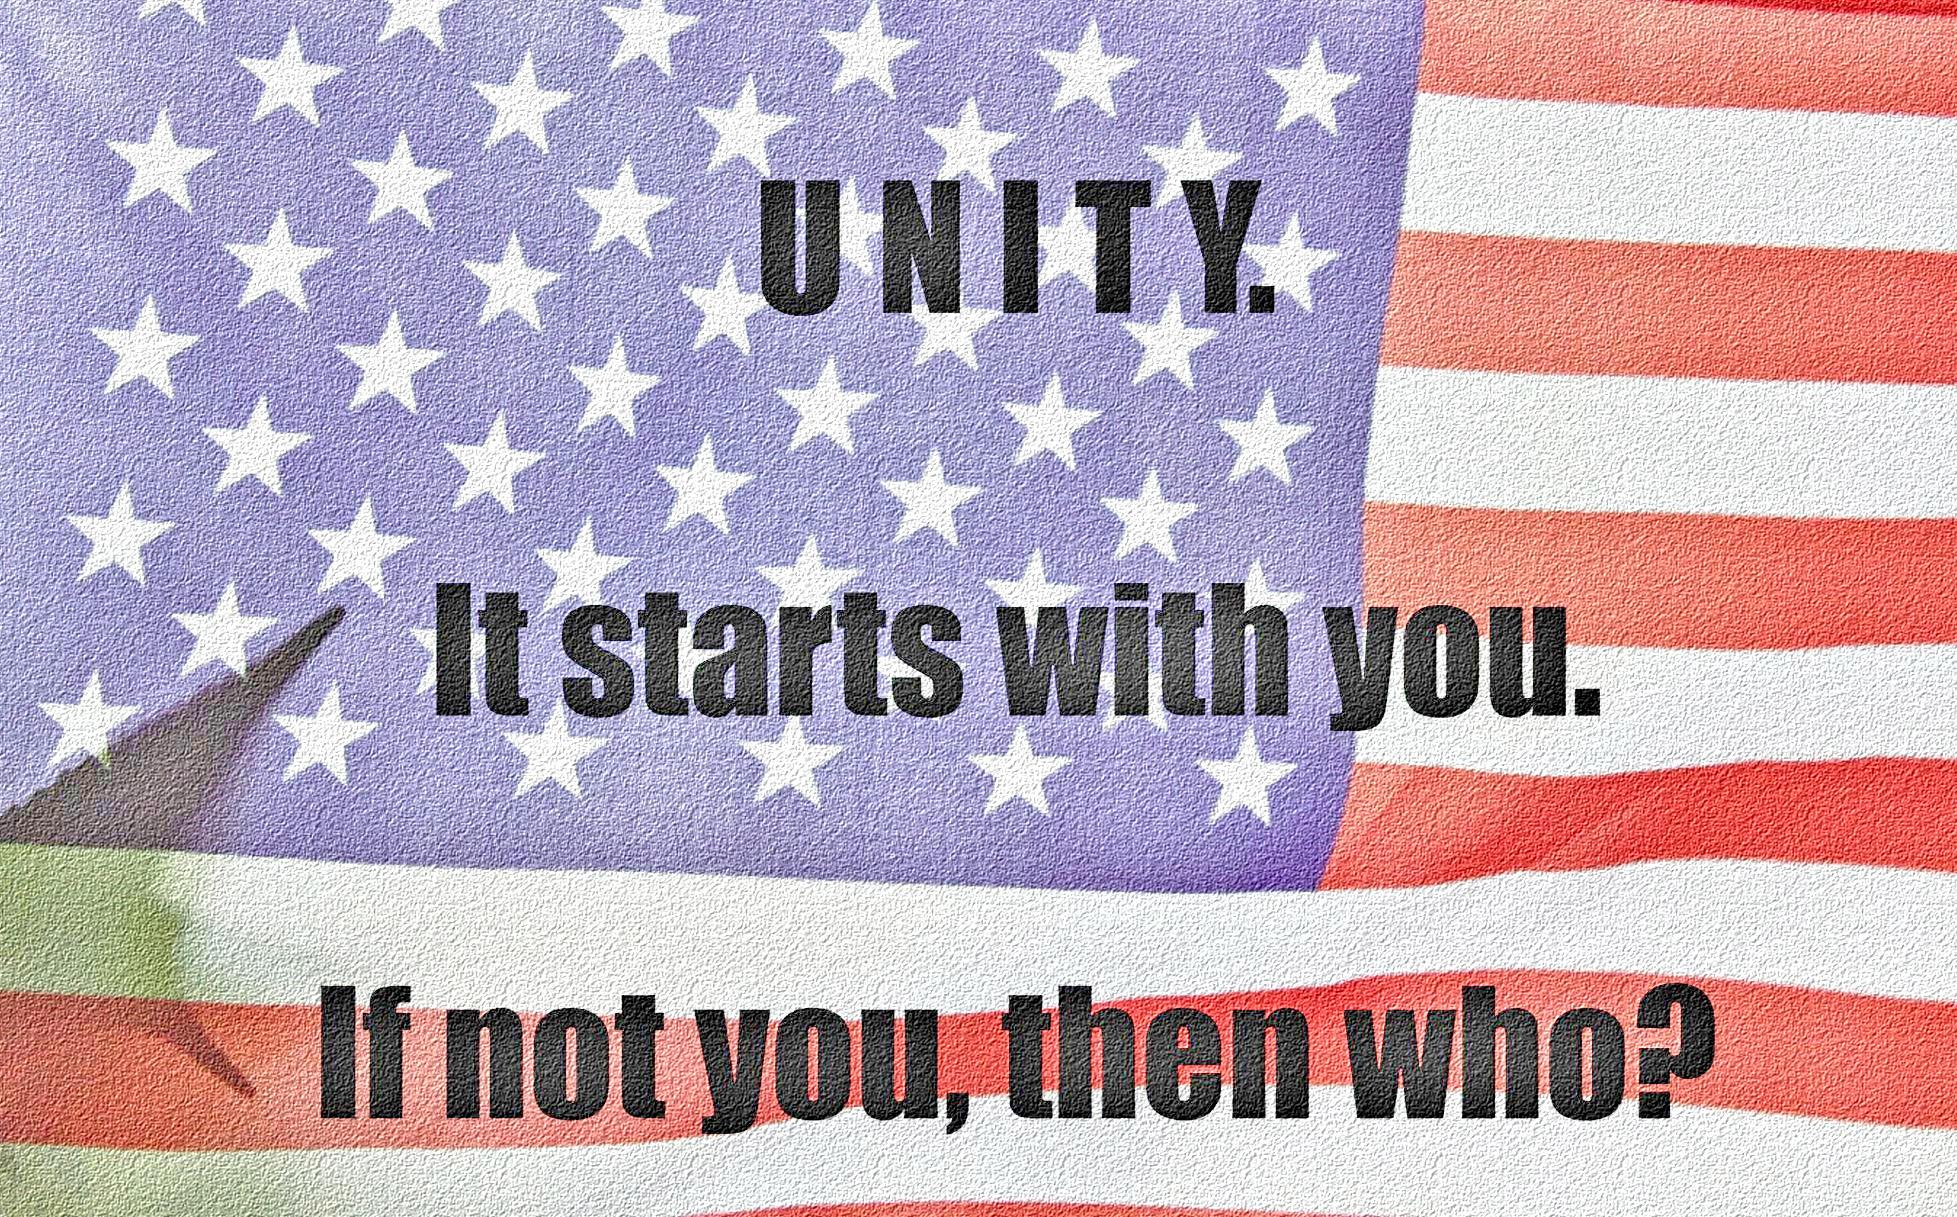 [Image] Unity. It starts with you. if not you, then who? It's time to promote unity and diffuse negativity.